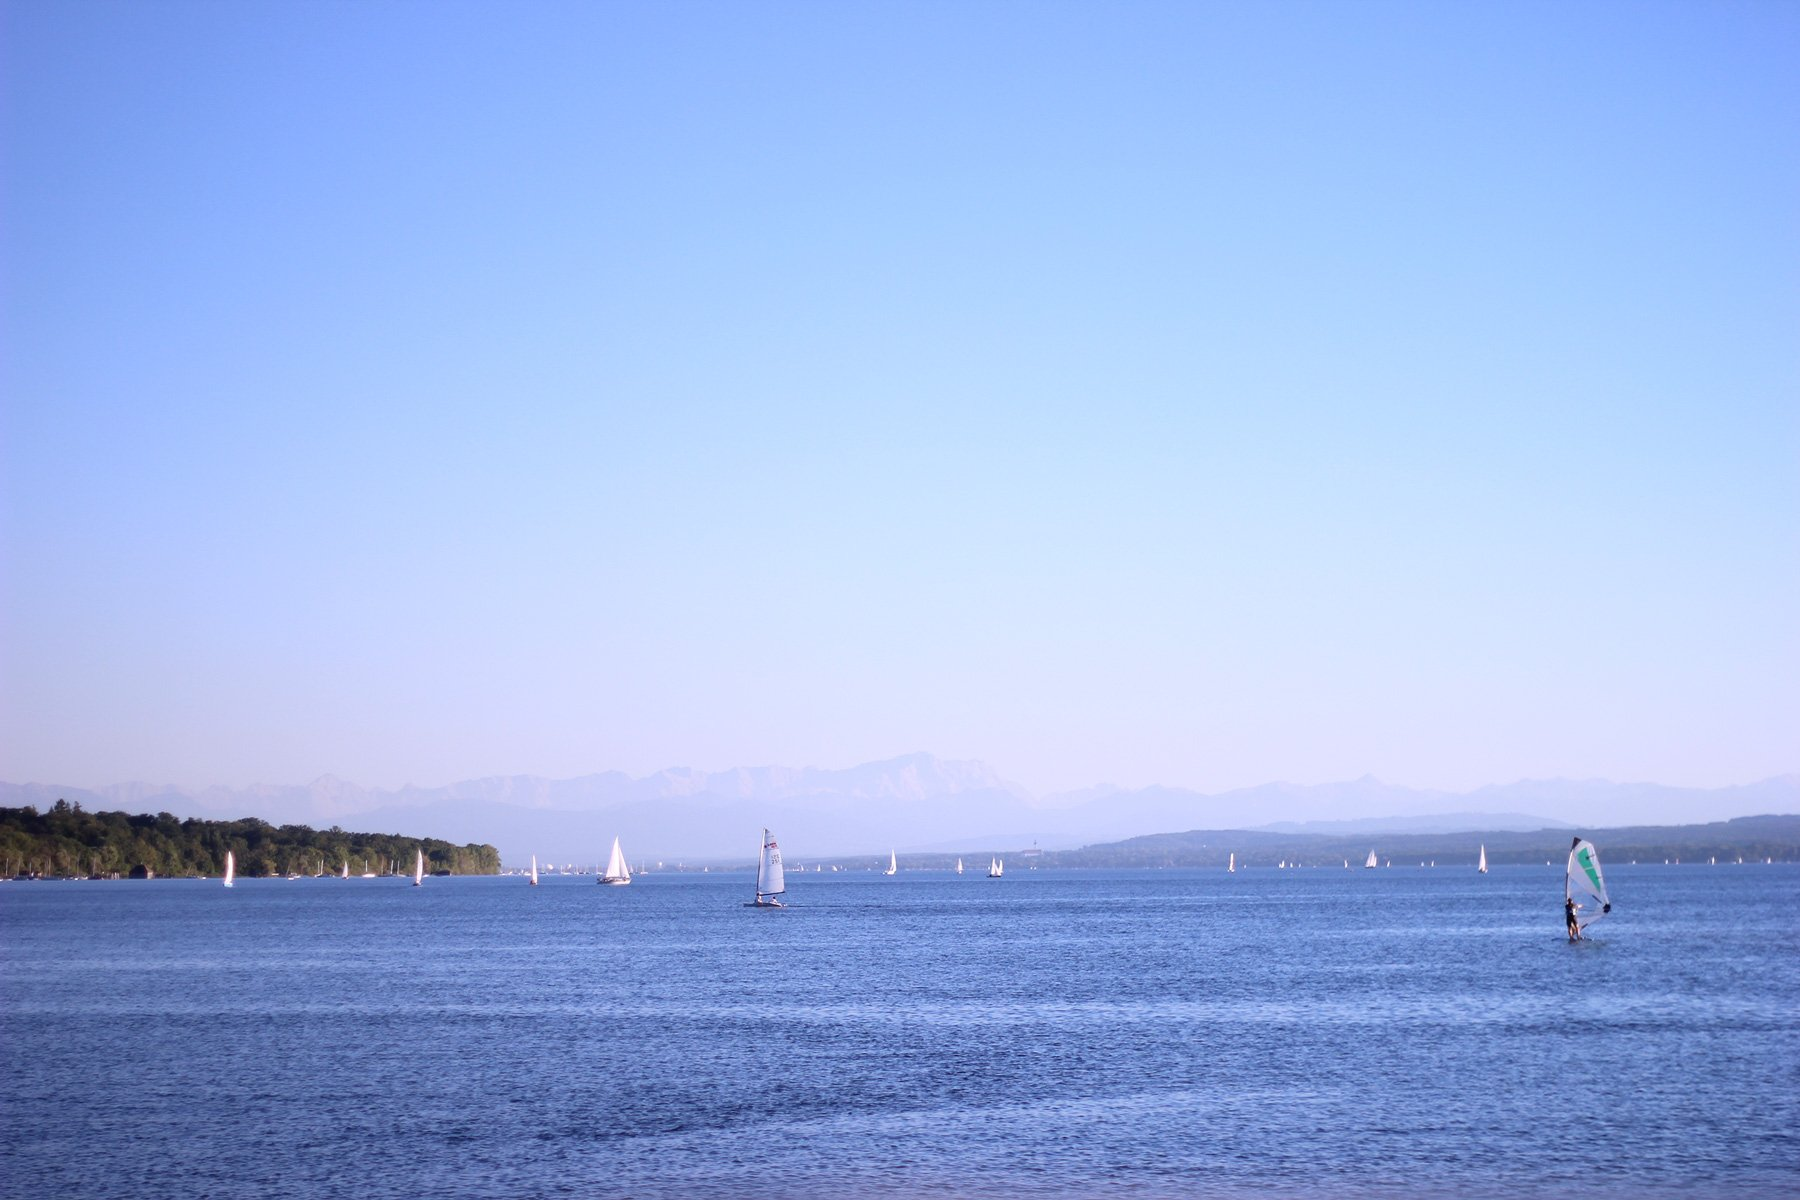 Ammersee, Lake, Sommer, Summerfeeling, Natur